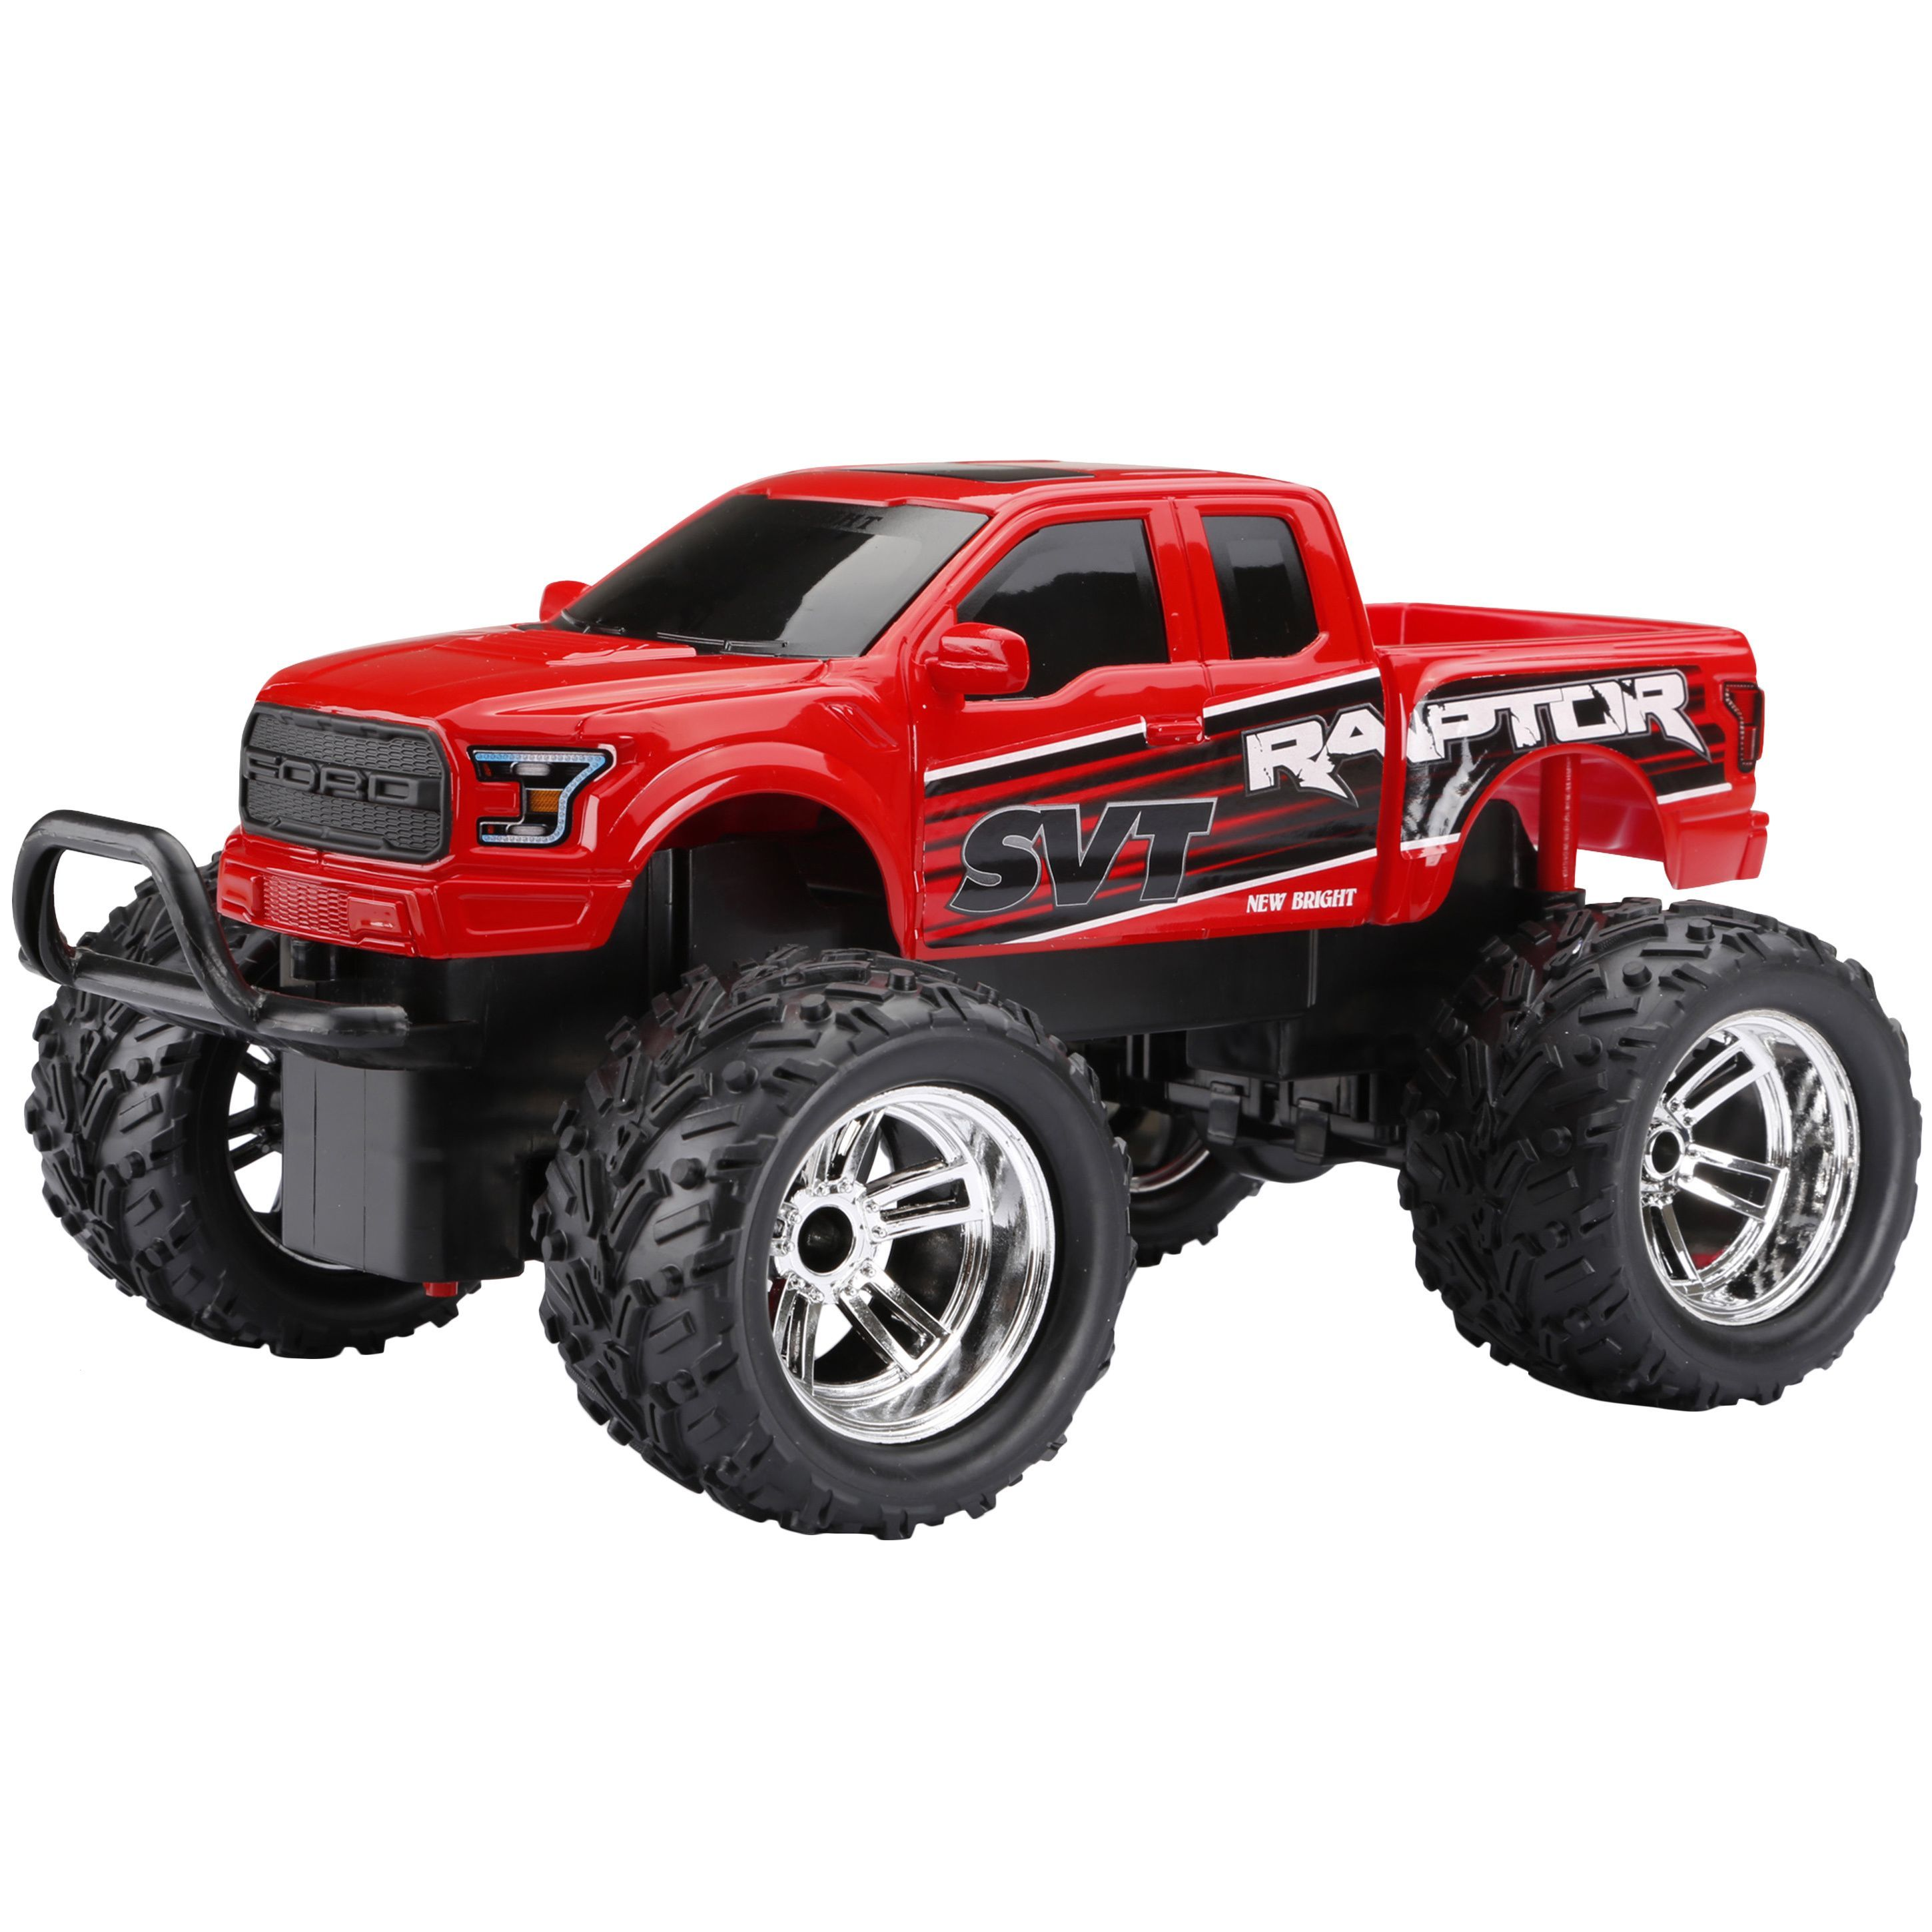 New bright charger ford raptor remote controlled toy the new bright charger ford raptor remote controlled toy is full of fun functions including left and